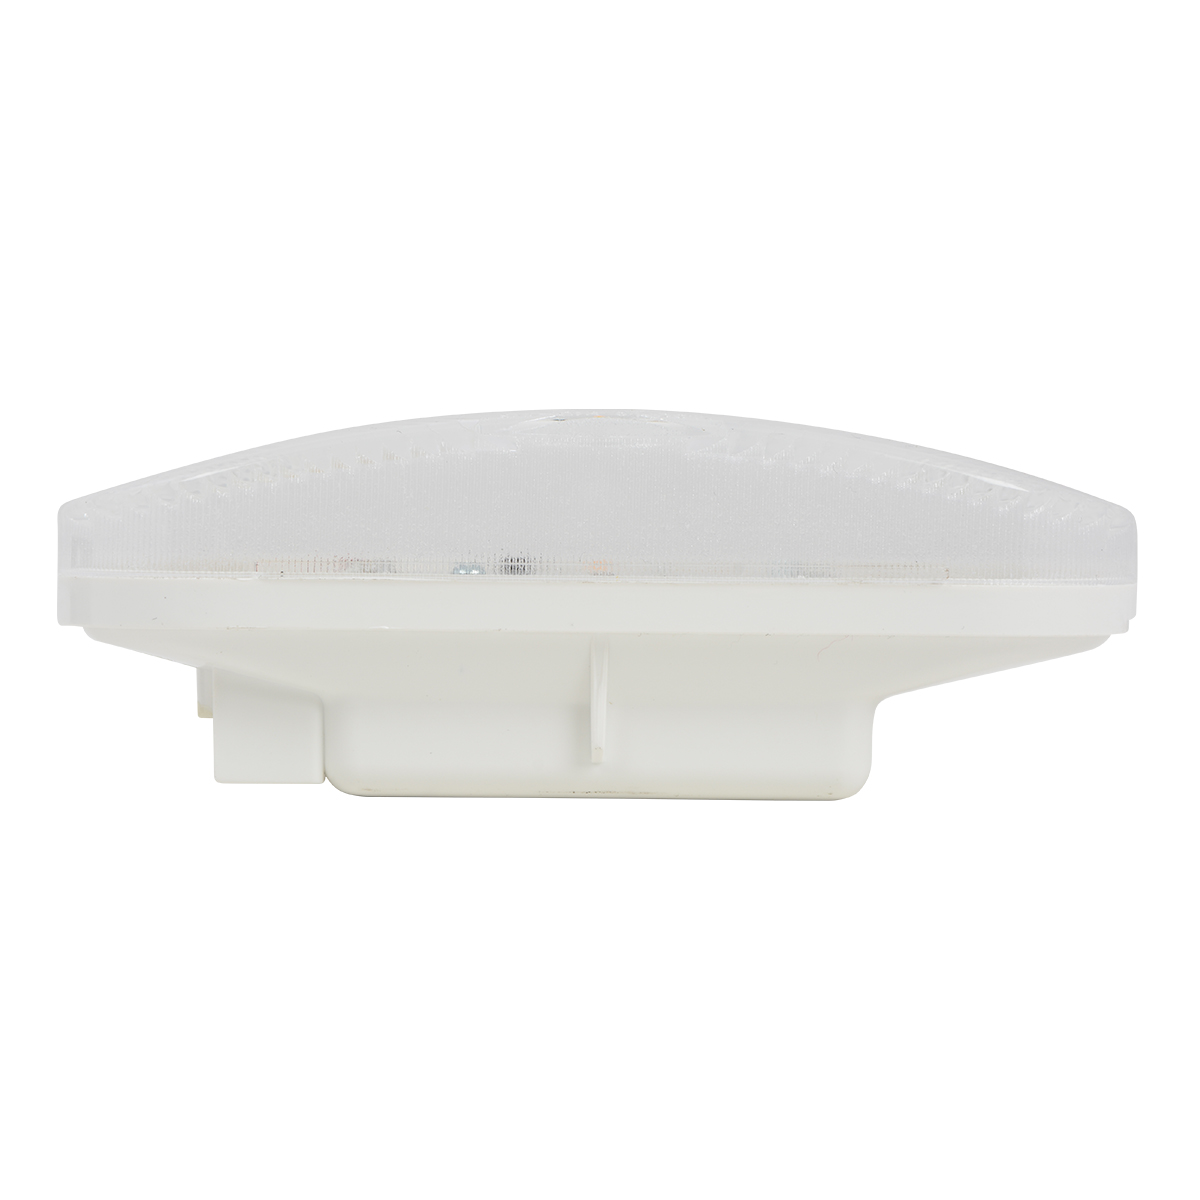 75852 Oval Single High Power LED Sealed Light